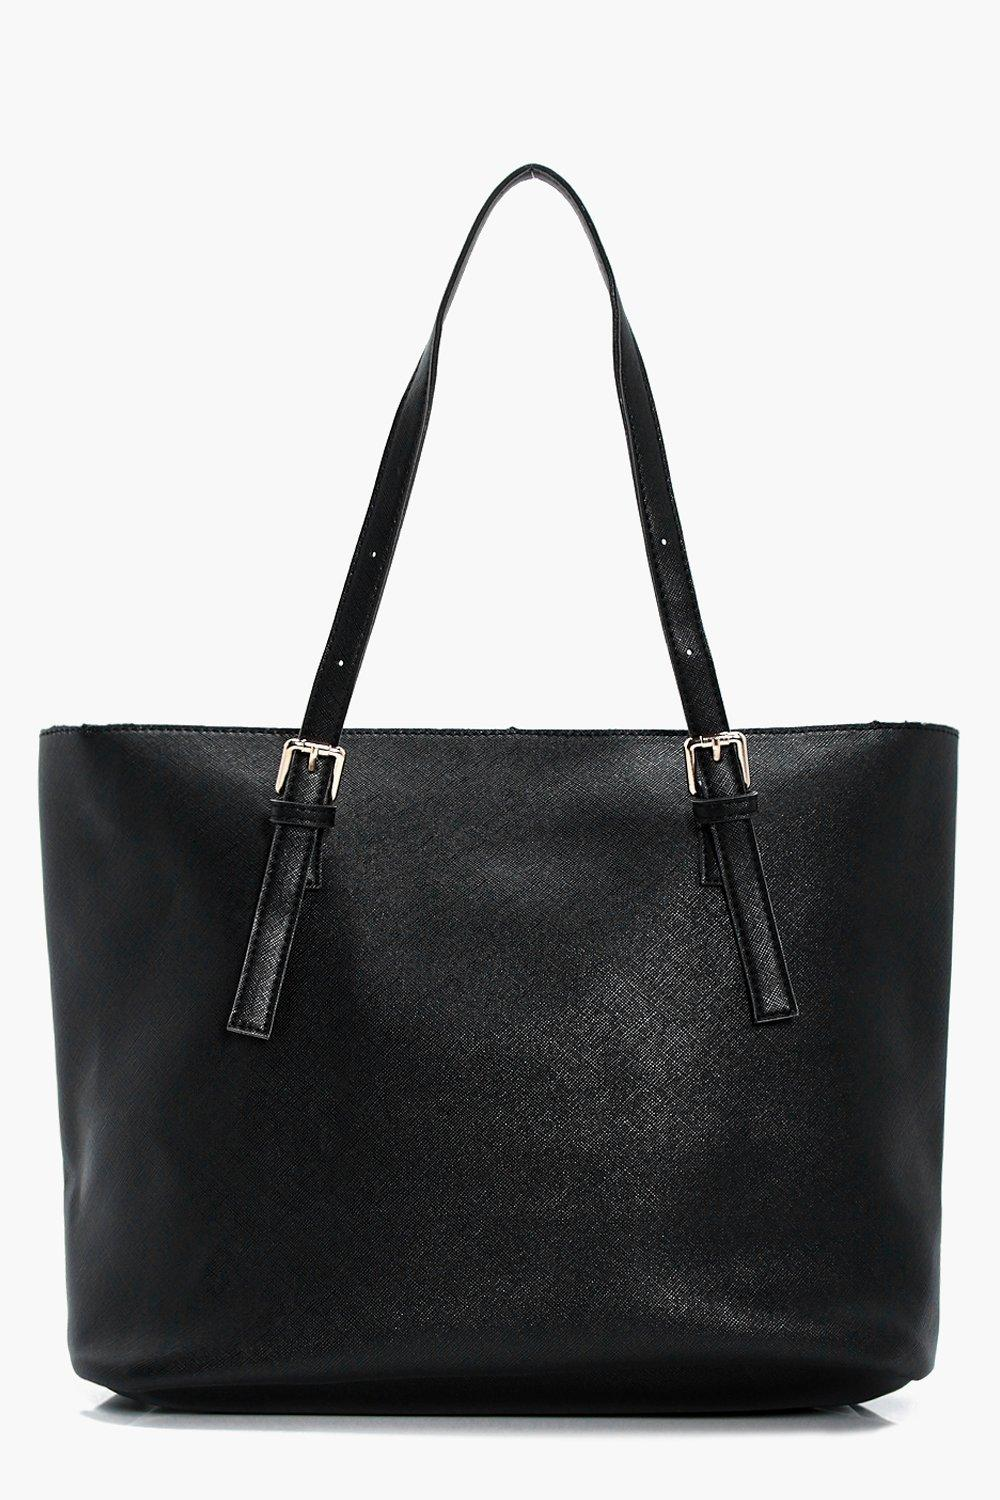 Crosshatch Buckle Tote - black - Sophie Crosshatch